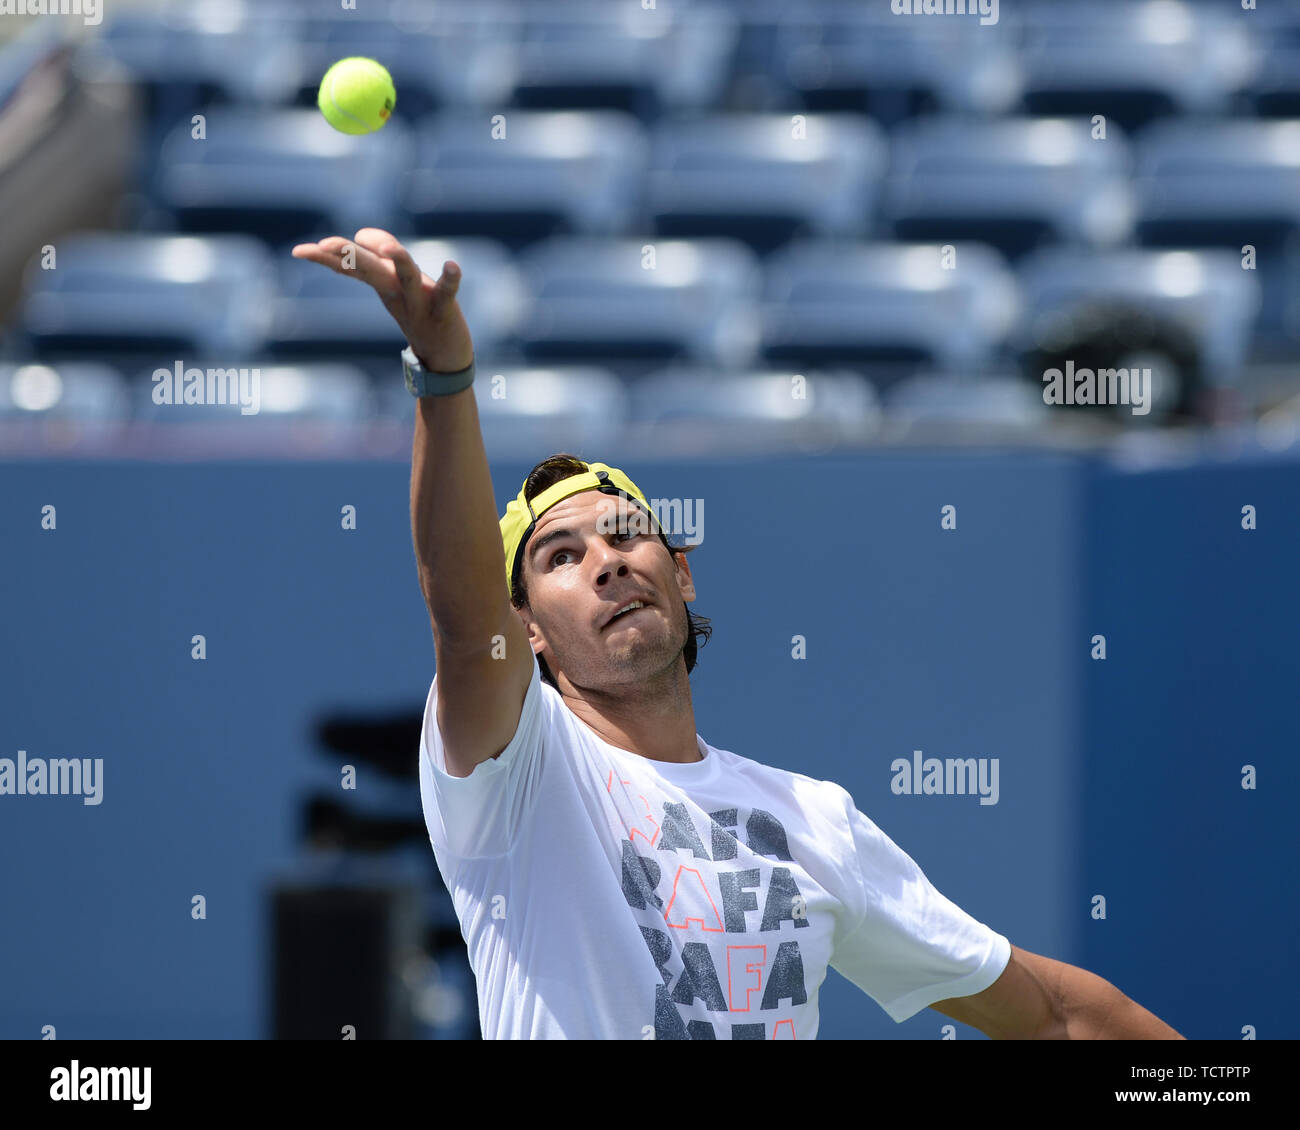 Queens, United States Of America. 24th Aug, 2013. FLUSHING, NY - AUGUST 23: Rafael Nadal practices with Andy Murray at Auther Ashe Stadium for the 2013 US Open at the USTA Billie Jean King National Tennis Center on August 23, 2013 in the Flushing neighborhood of the Queens borough of New York City. People: Rafael Nadal Credit: Storms Media Group/Alamy Live News Stock Photo